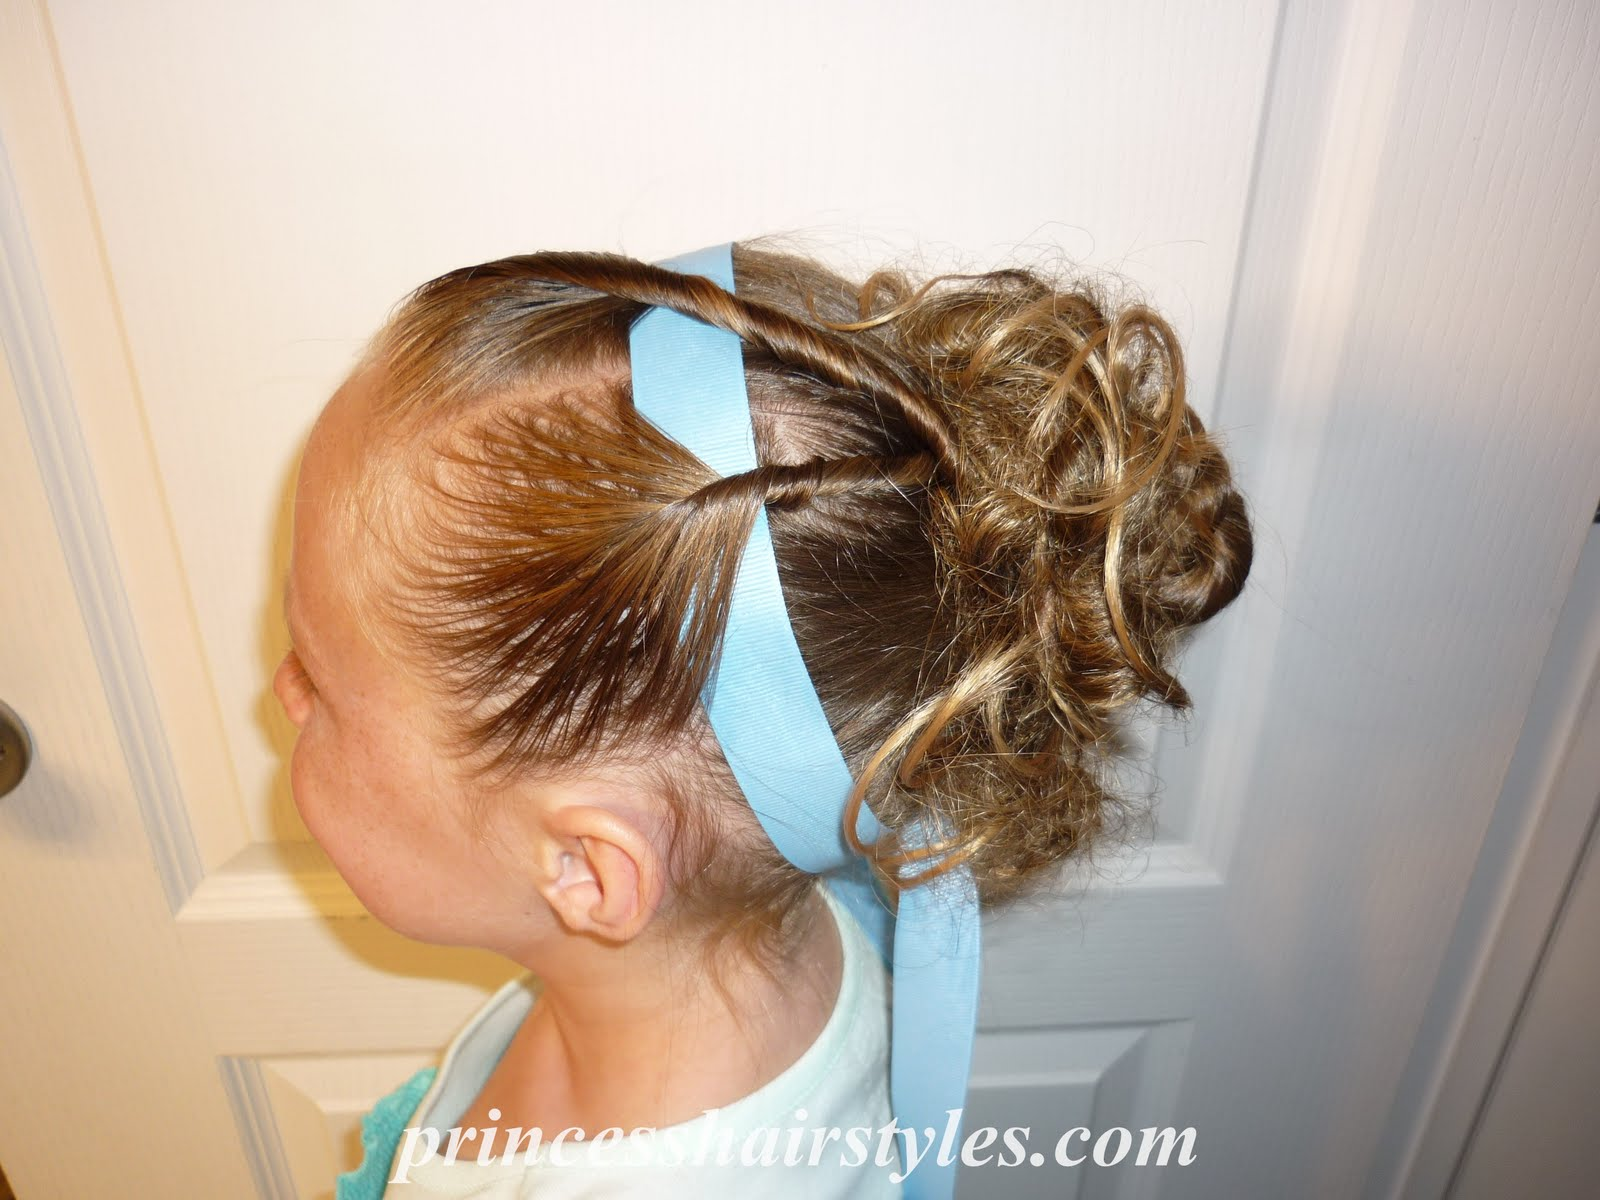 Hair Styles For Toddlers: Hairstyles For Dance Competition, Recital